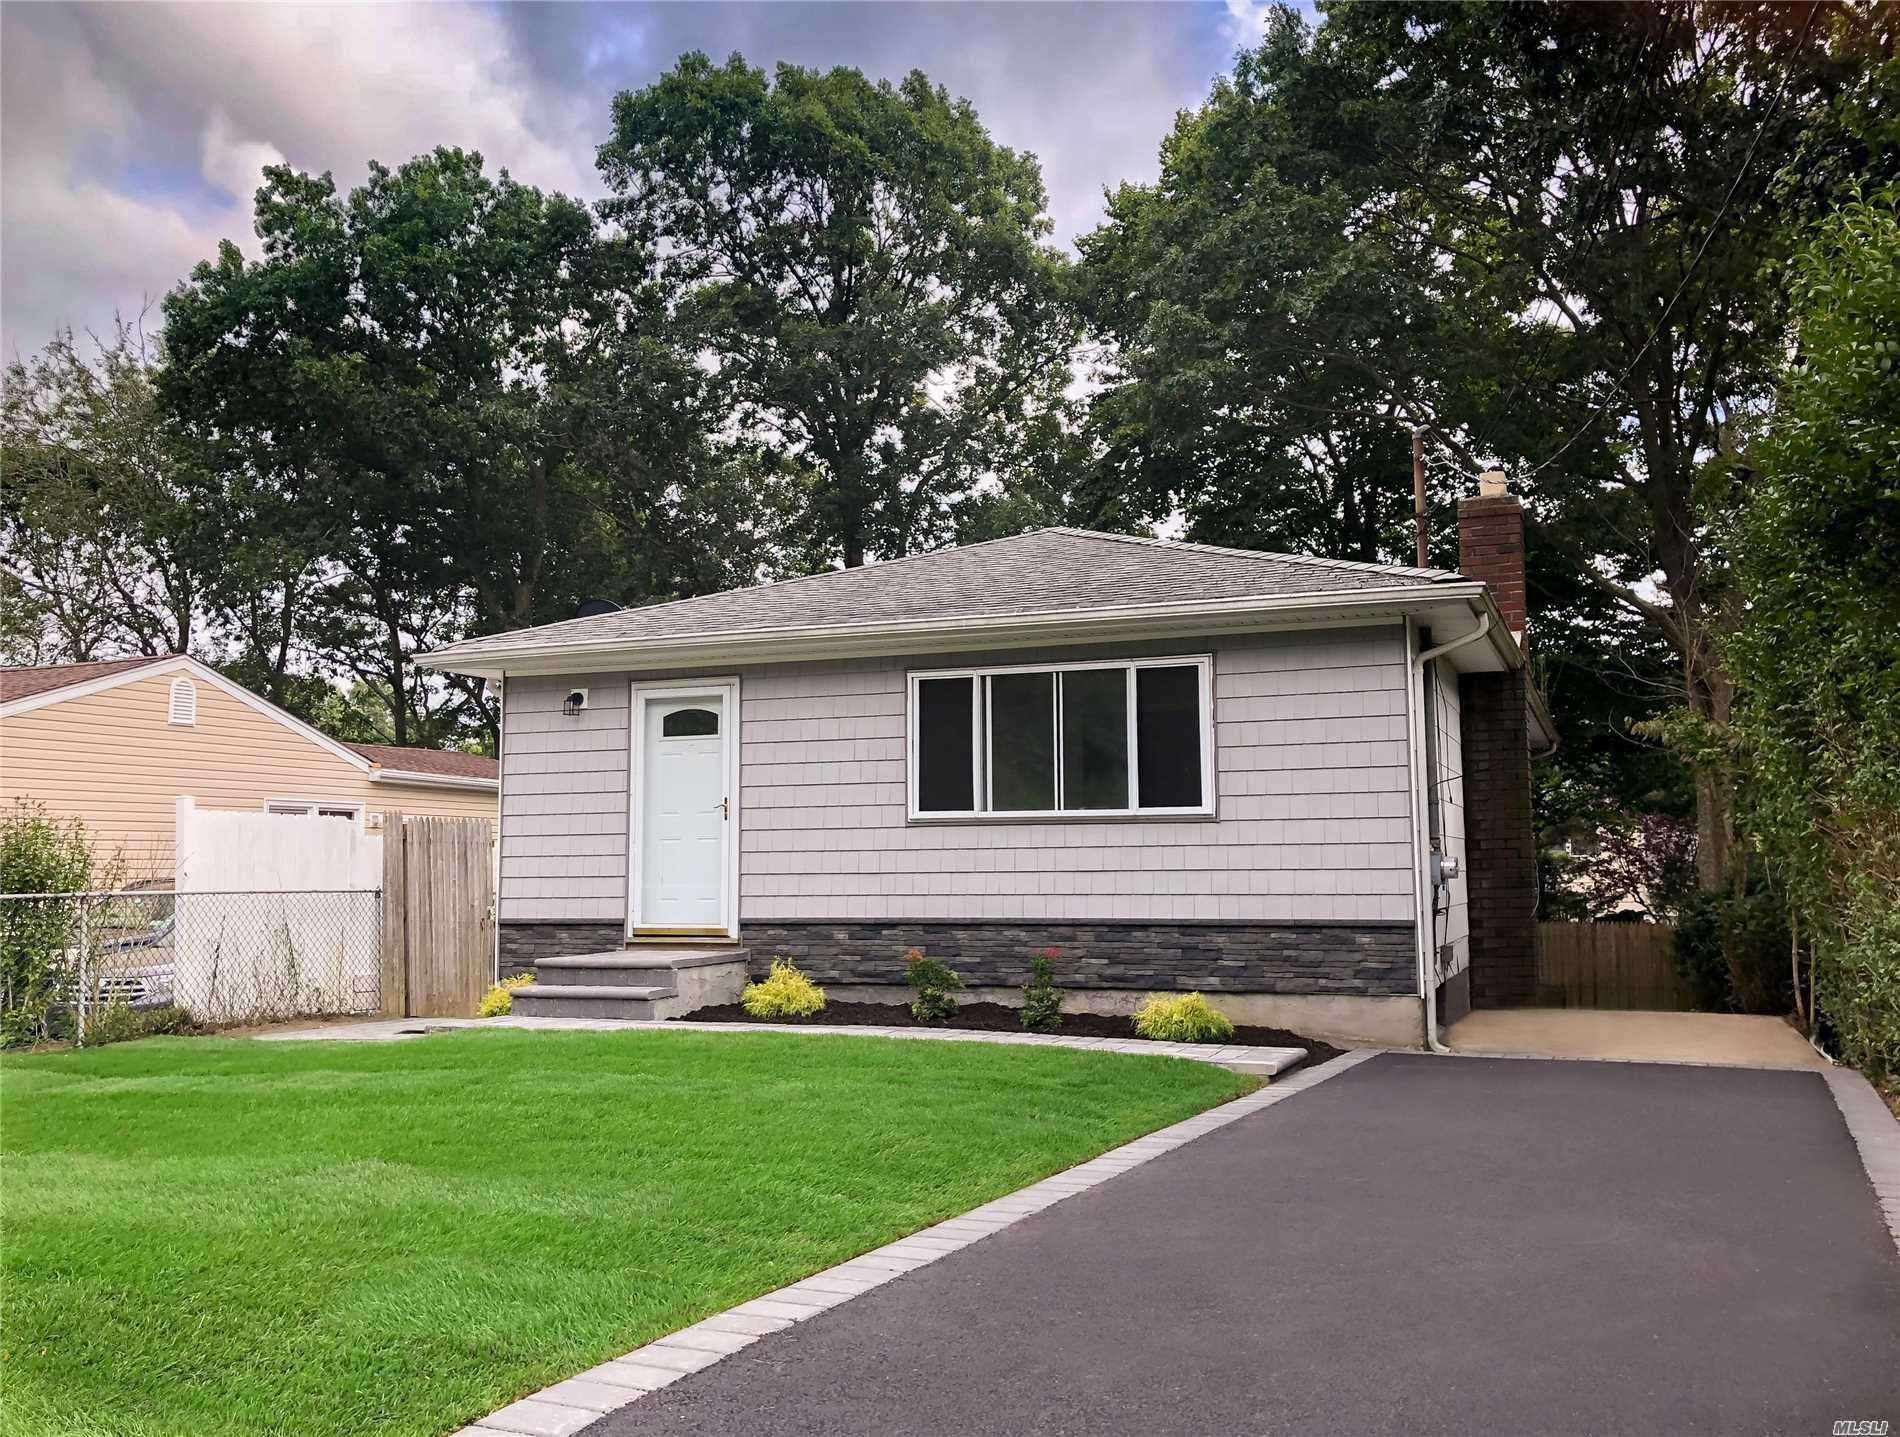 Renovated / Turn Key Ready Perfect 3 Bedroom 2 Bath Ranch Features Large Finished Basement Beautiful Oak Wood Floors Throughout. New Kitchen New Heating System  Large Rear Deck For Entertainment , New Siding , New Driveway / Brick Work , Quiet Mid Block Location Close To Shopping Transportation & North Shore Beaches